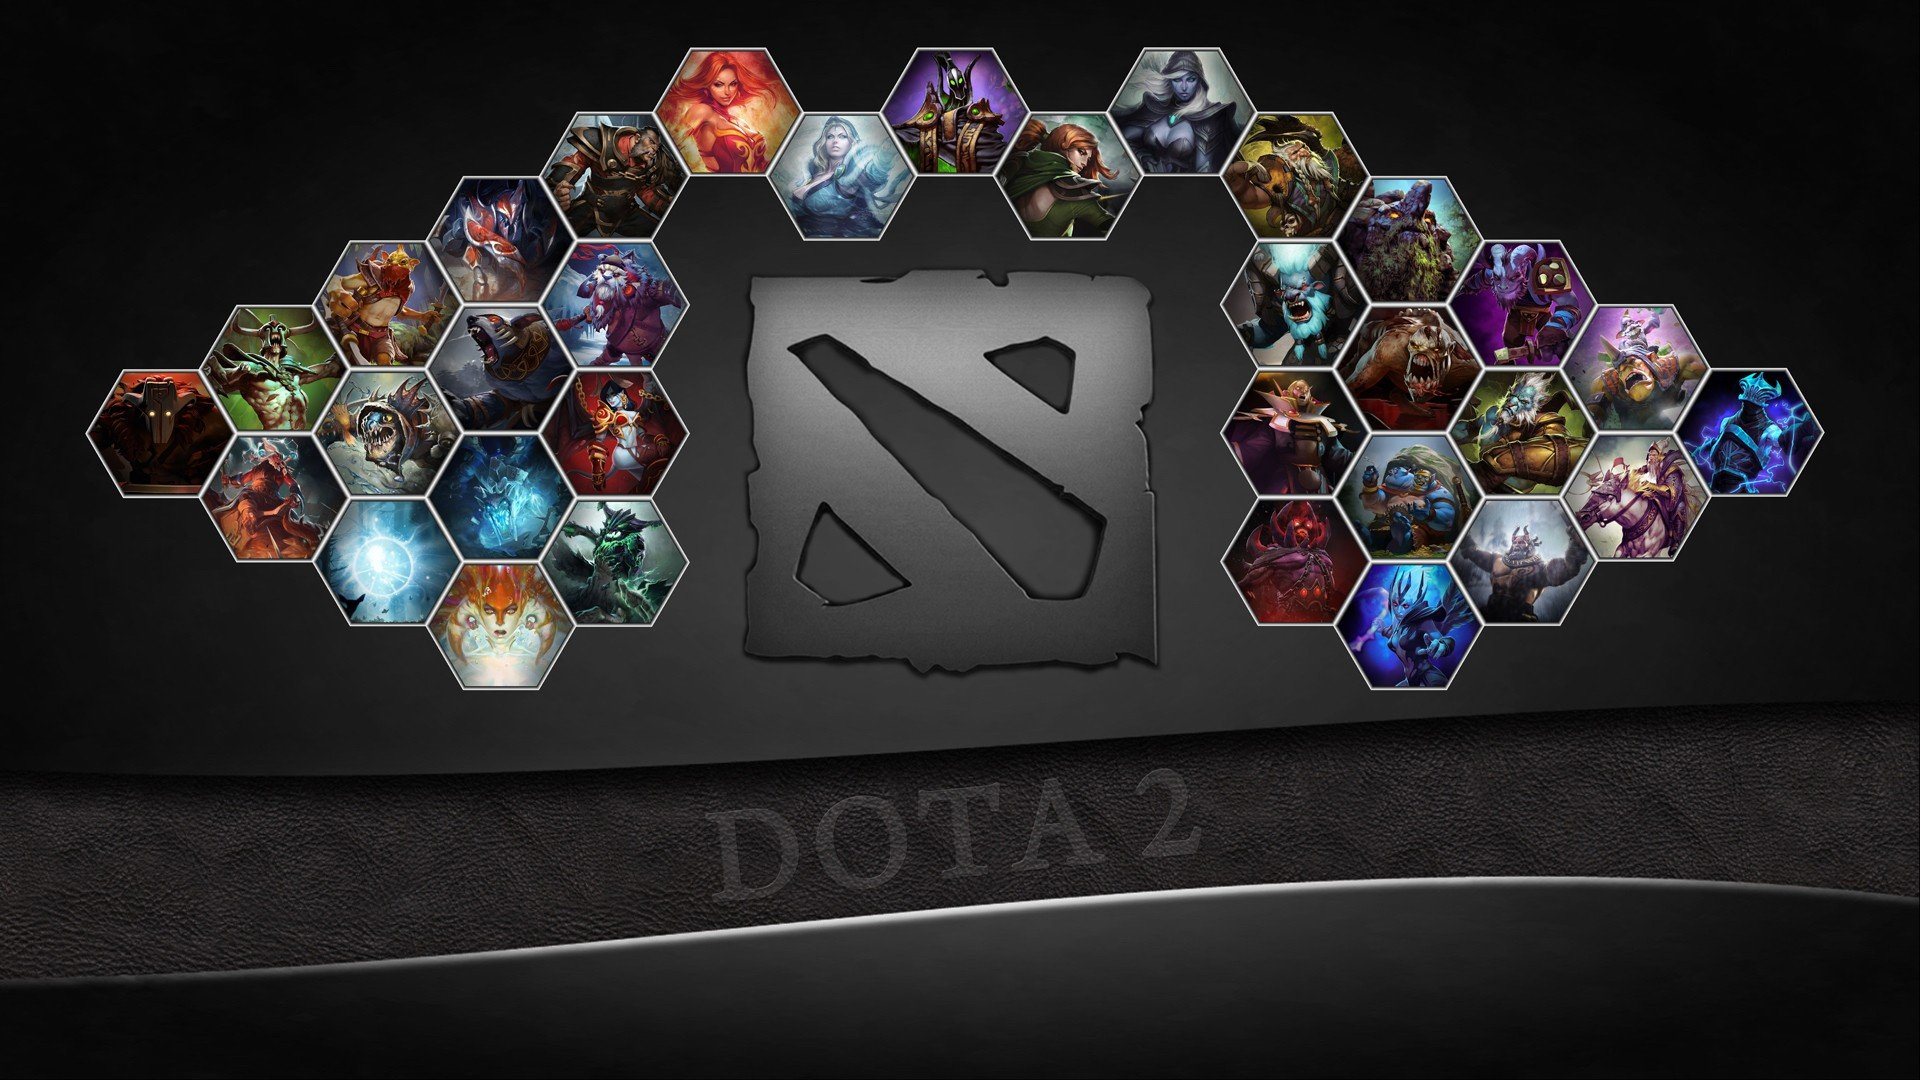 Dota 2 desktop Wallpapers HD